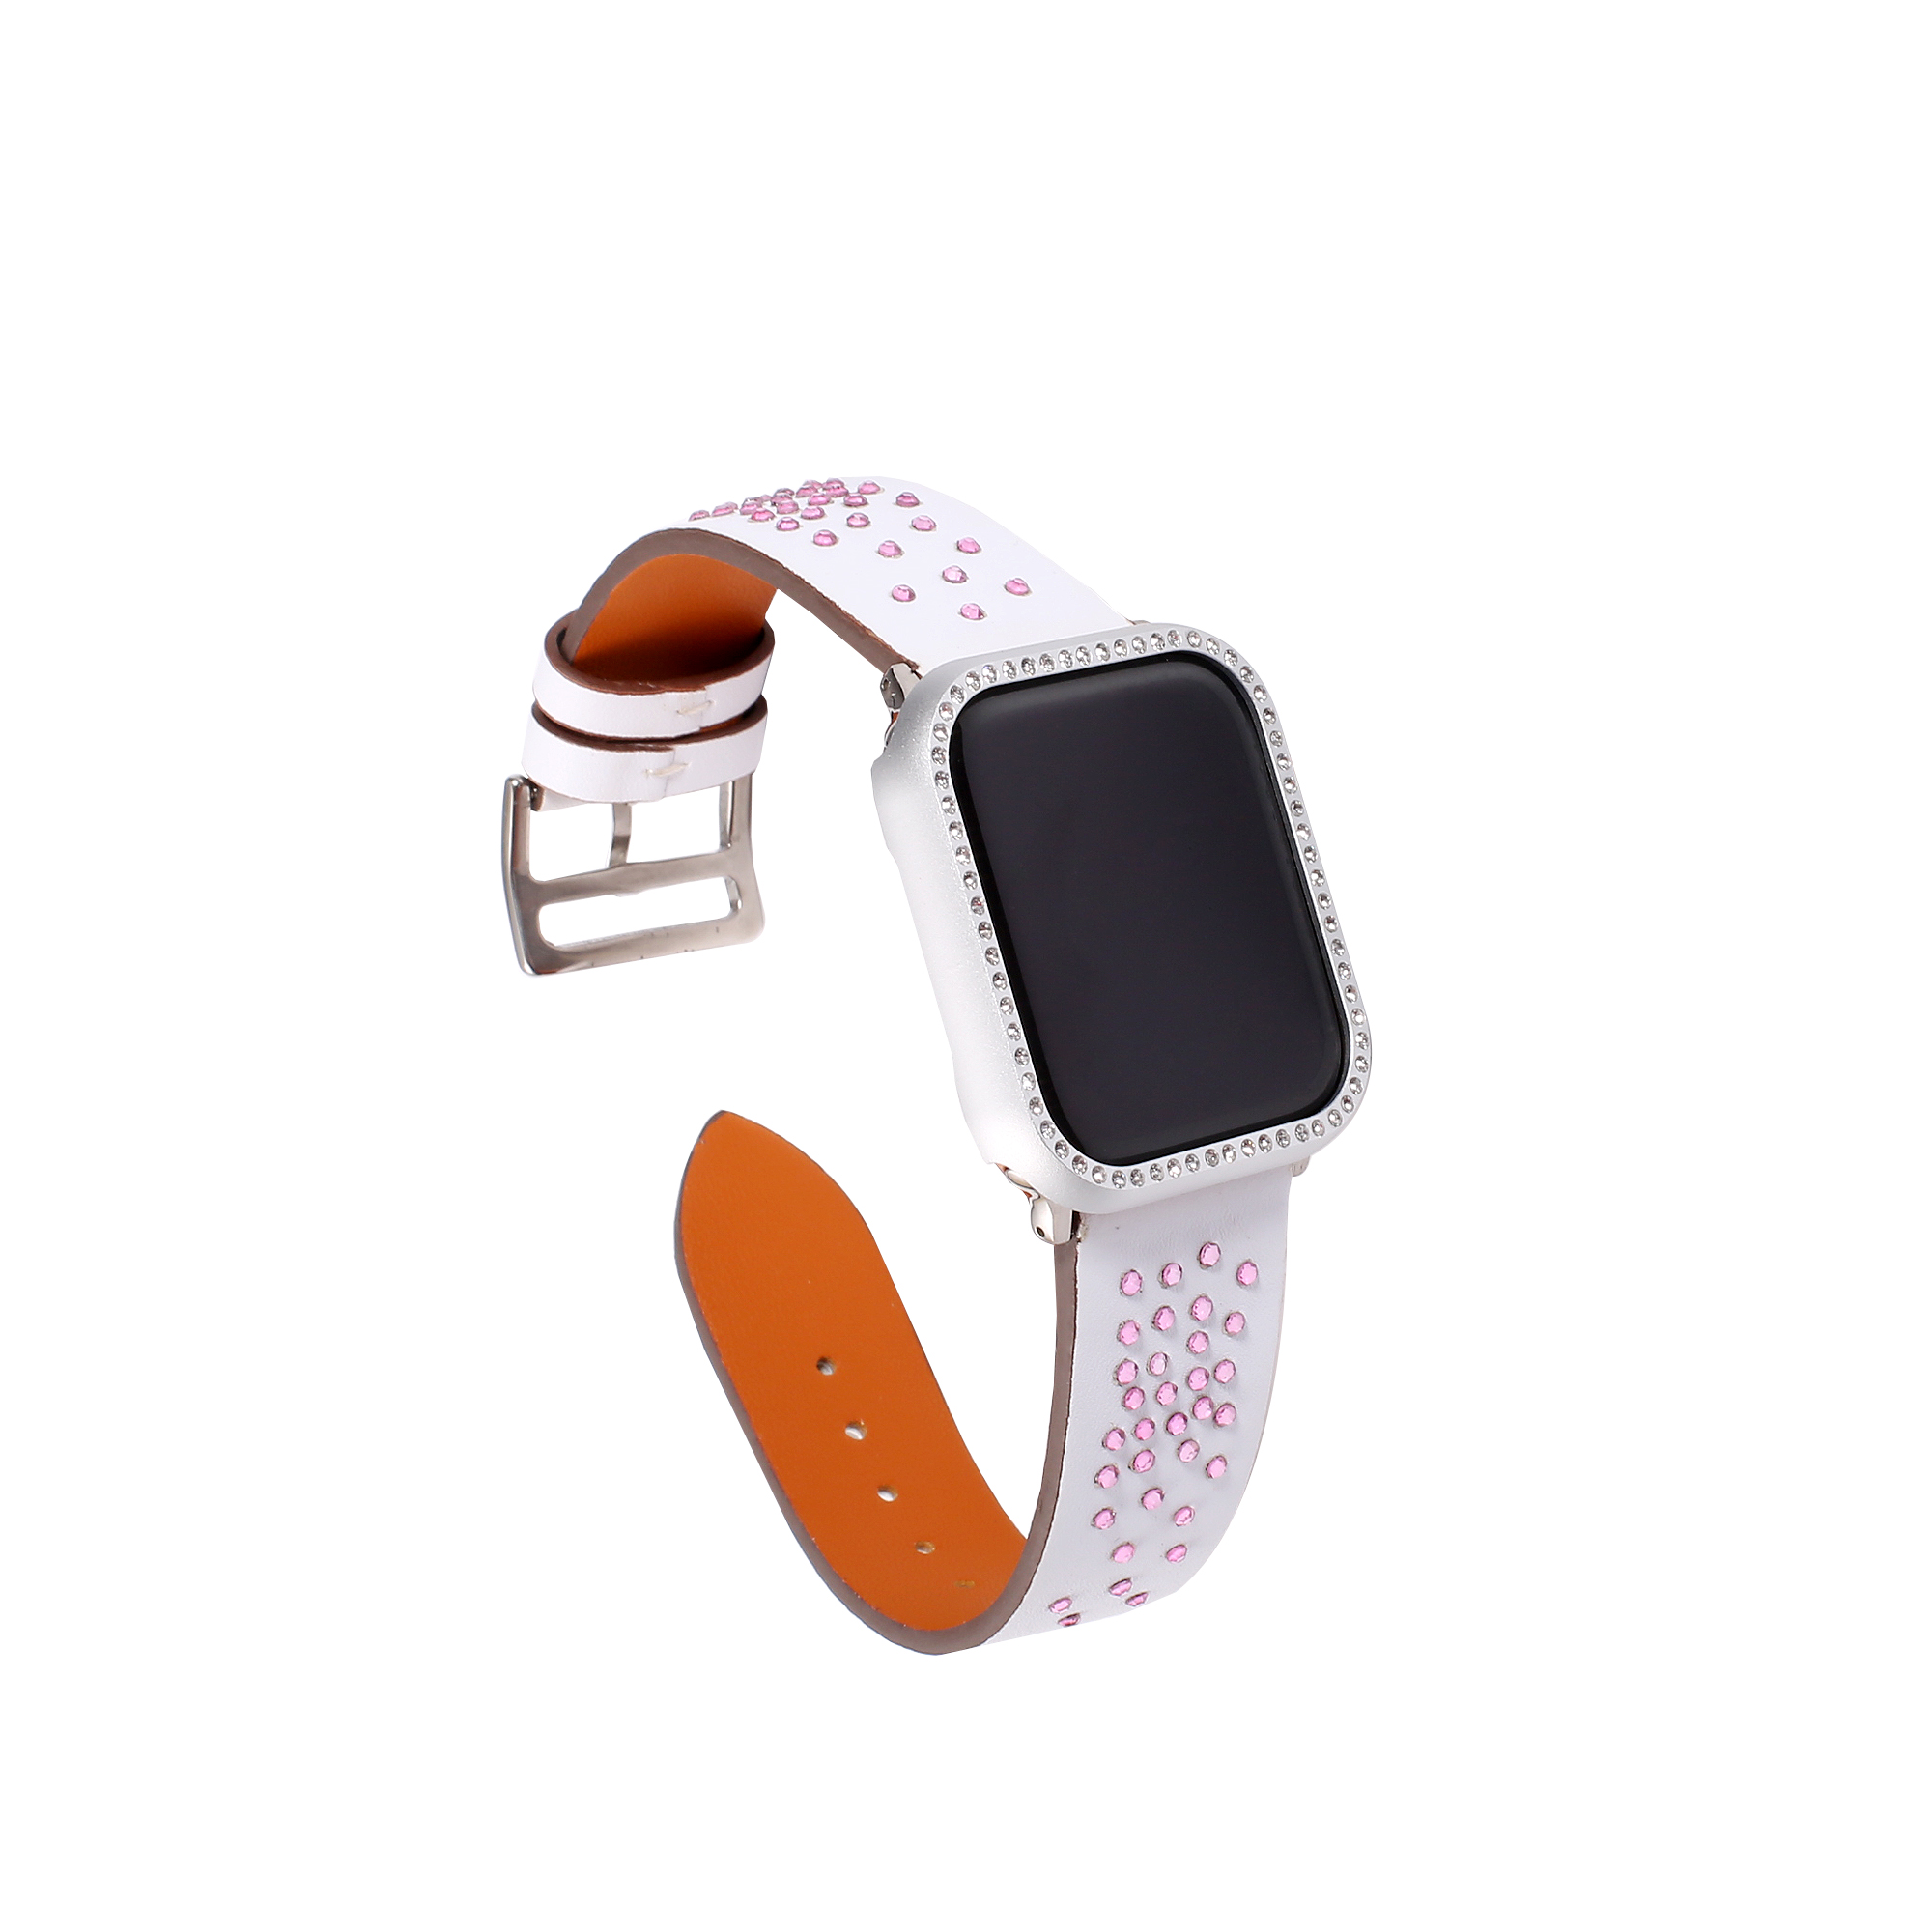 Leather sport loop strap cases for Apple watch band 40mm correa apple watch 4 44mm bracelet for iwatch band 42 38mm series 3 2 1 in Watchbands from Watches